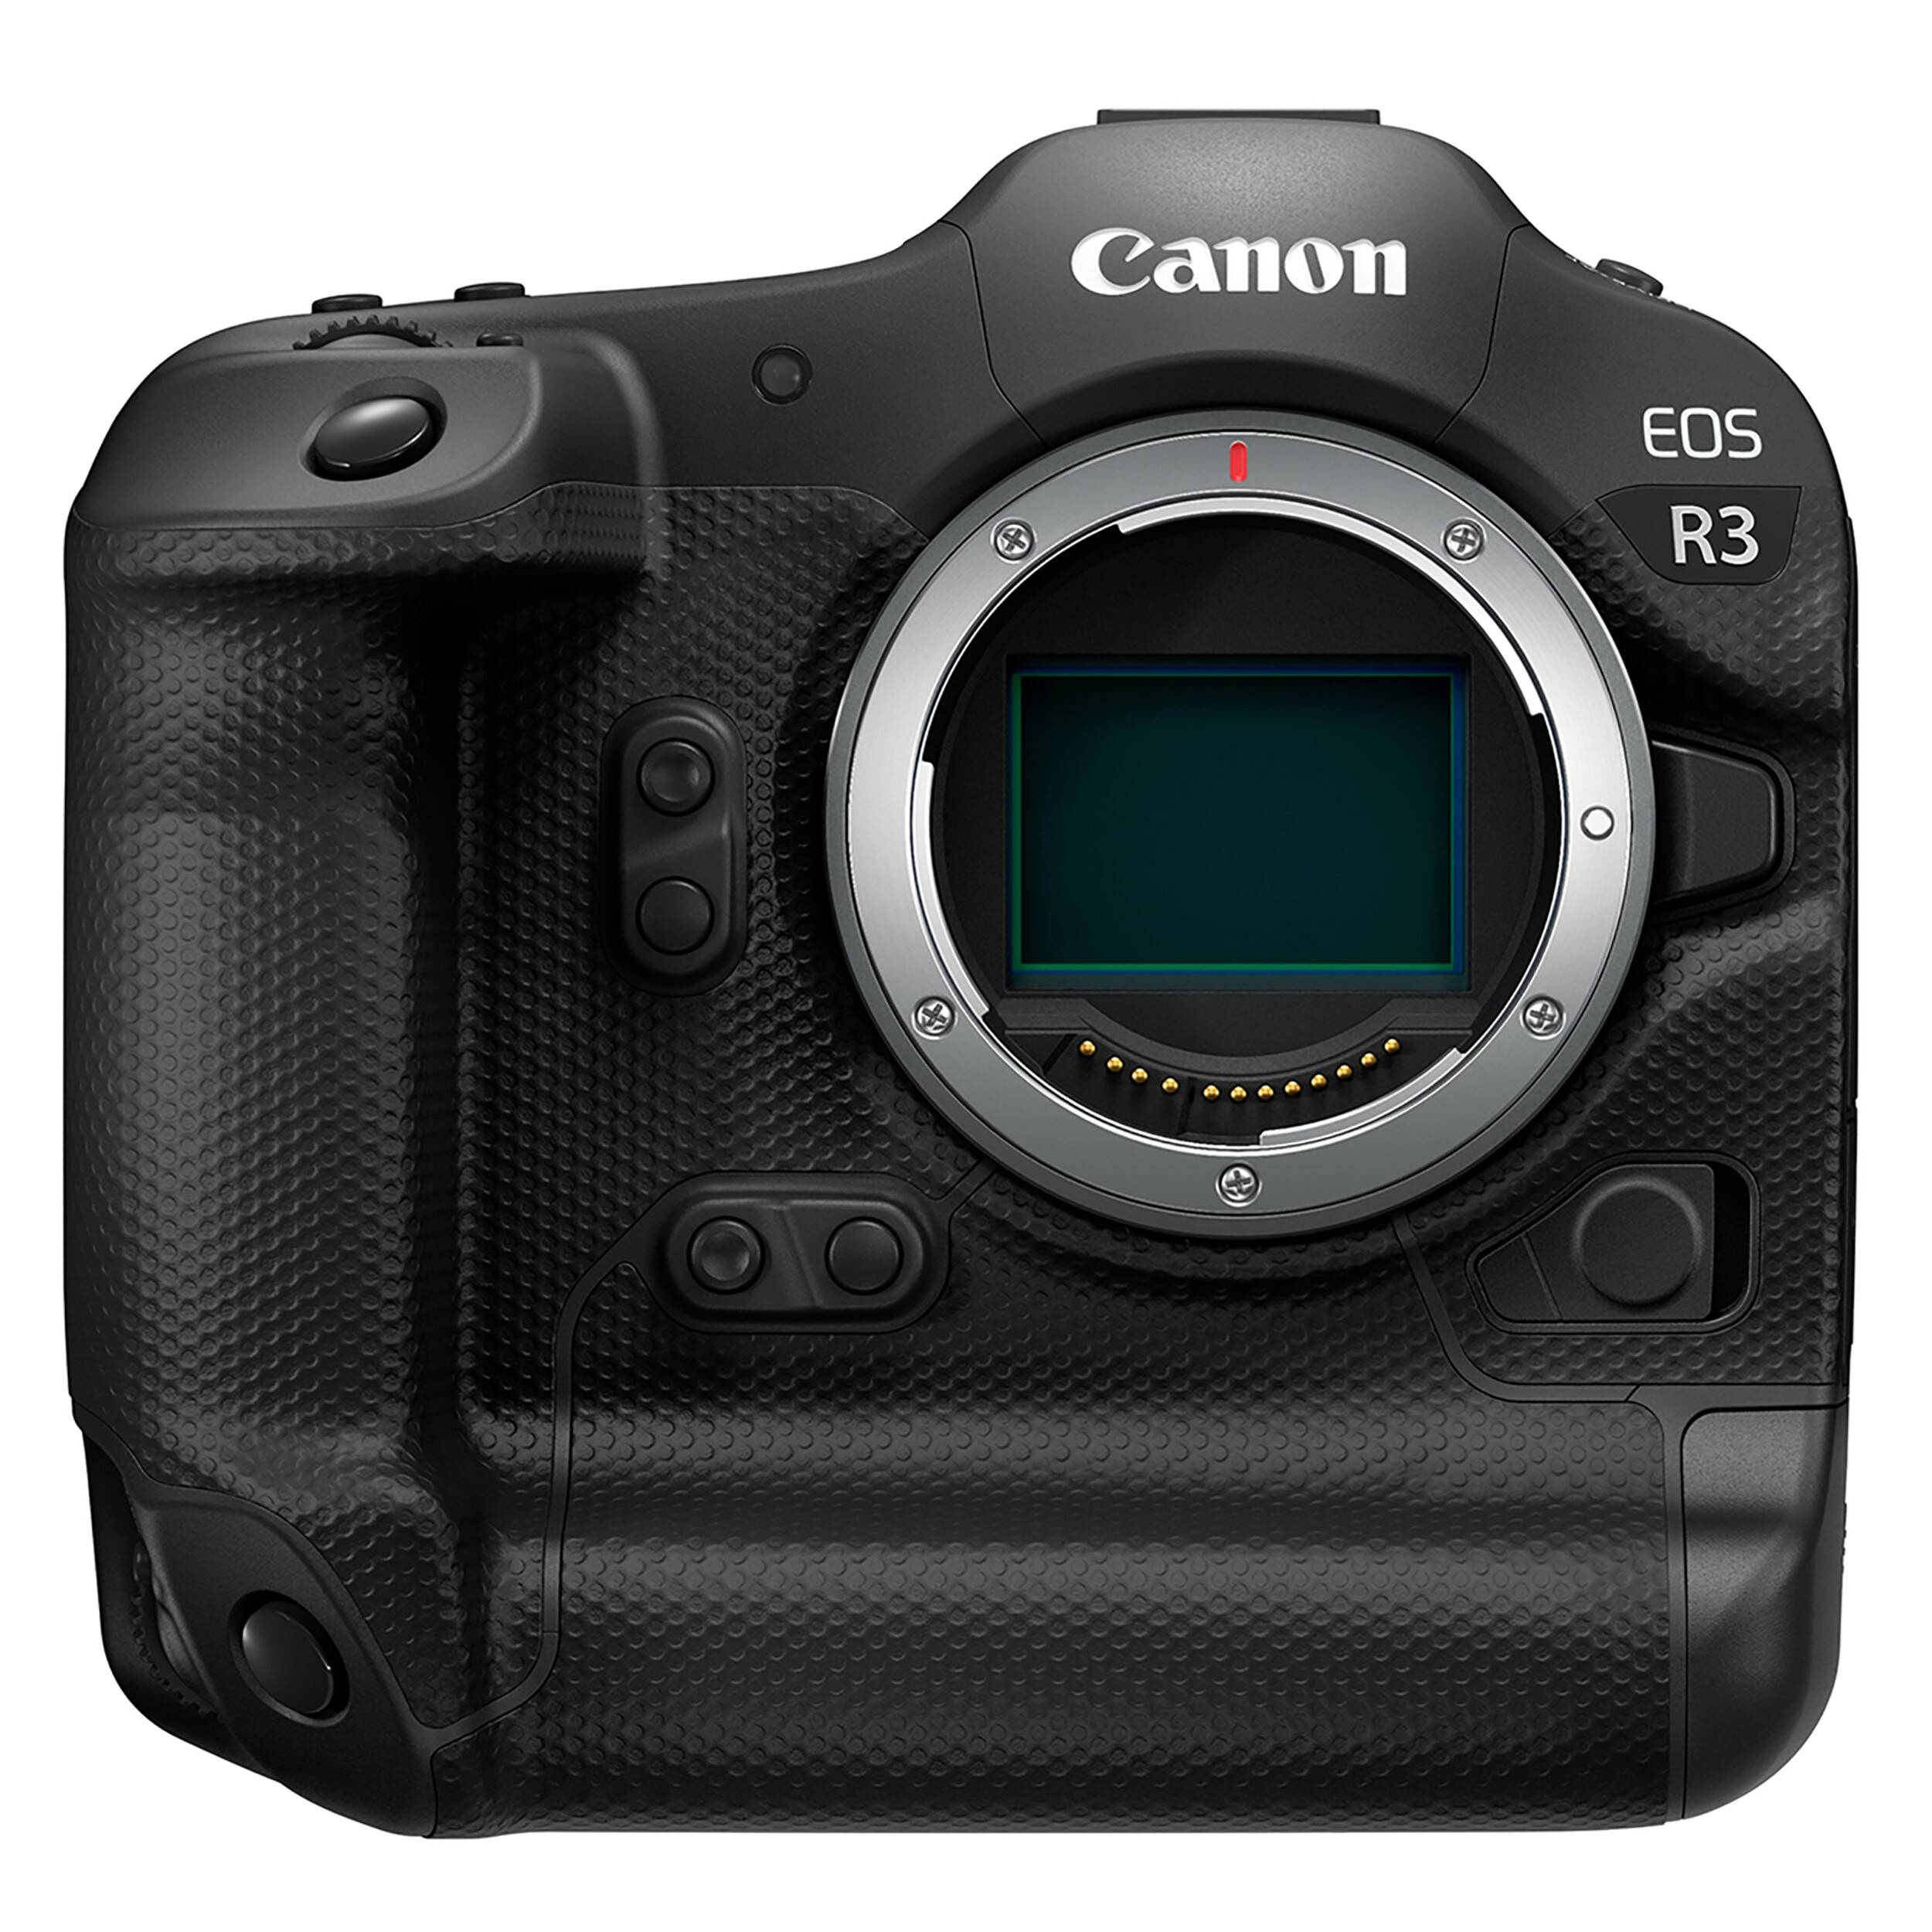 The Canon EOS R3 Has Arrived, Armed With 30 FPS Continuous Stills Shooting